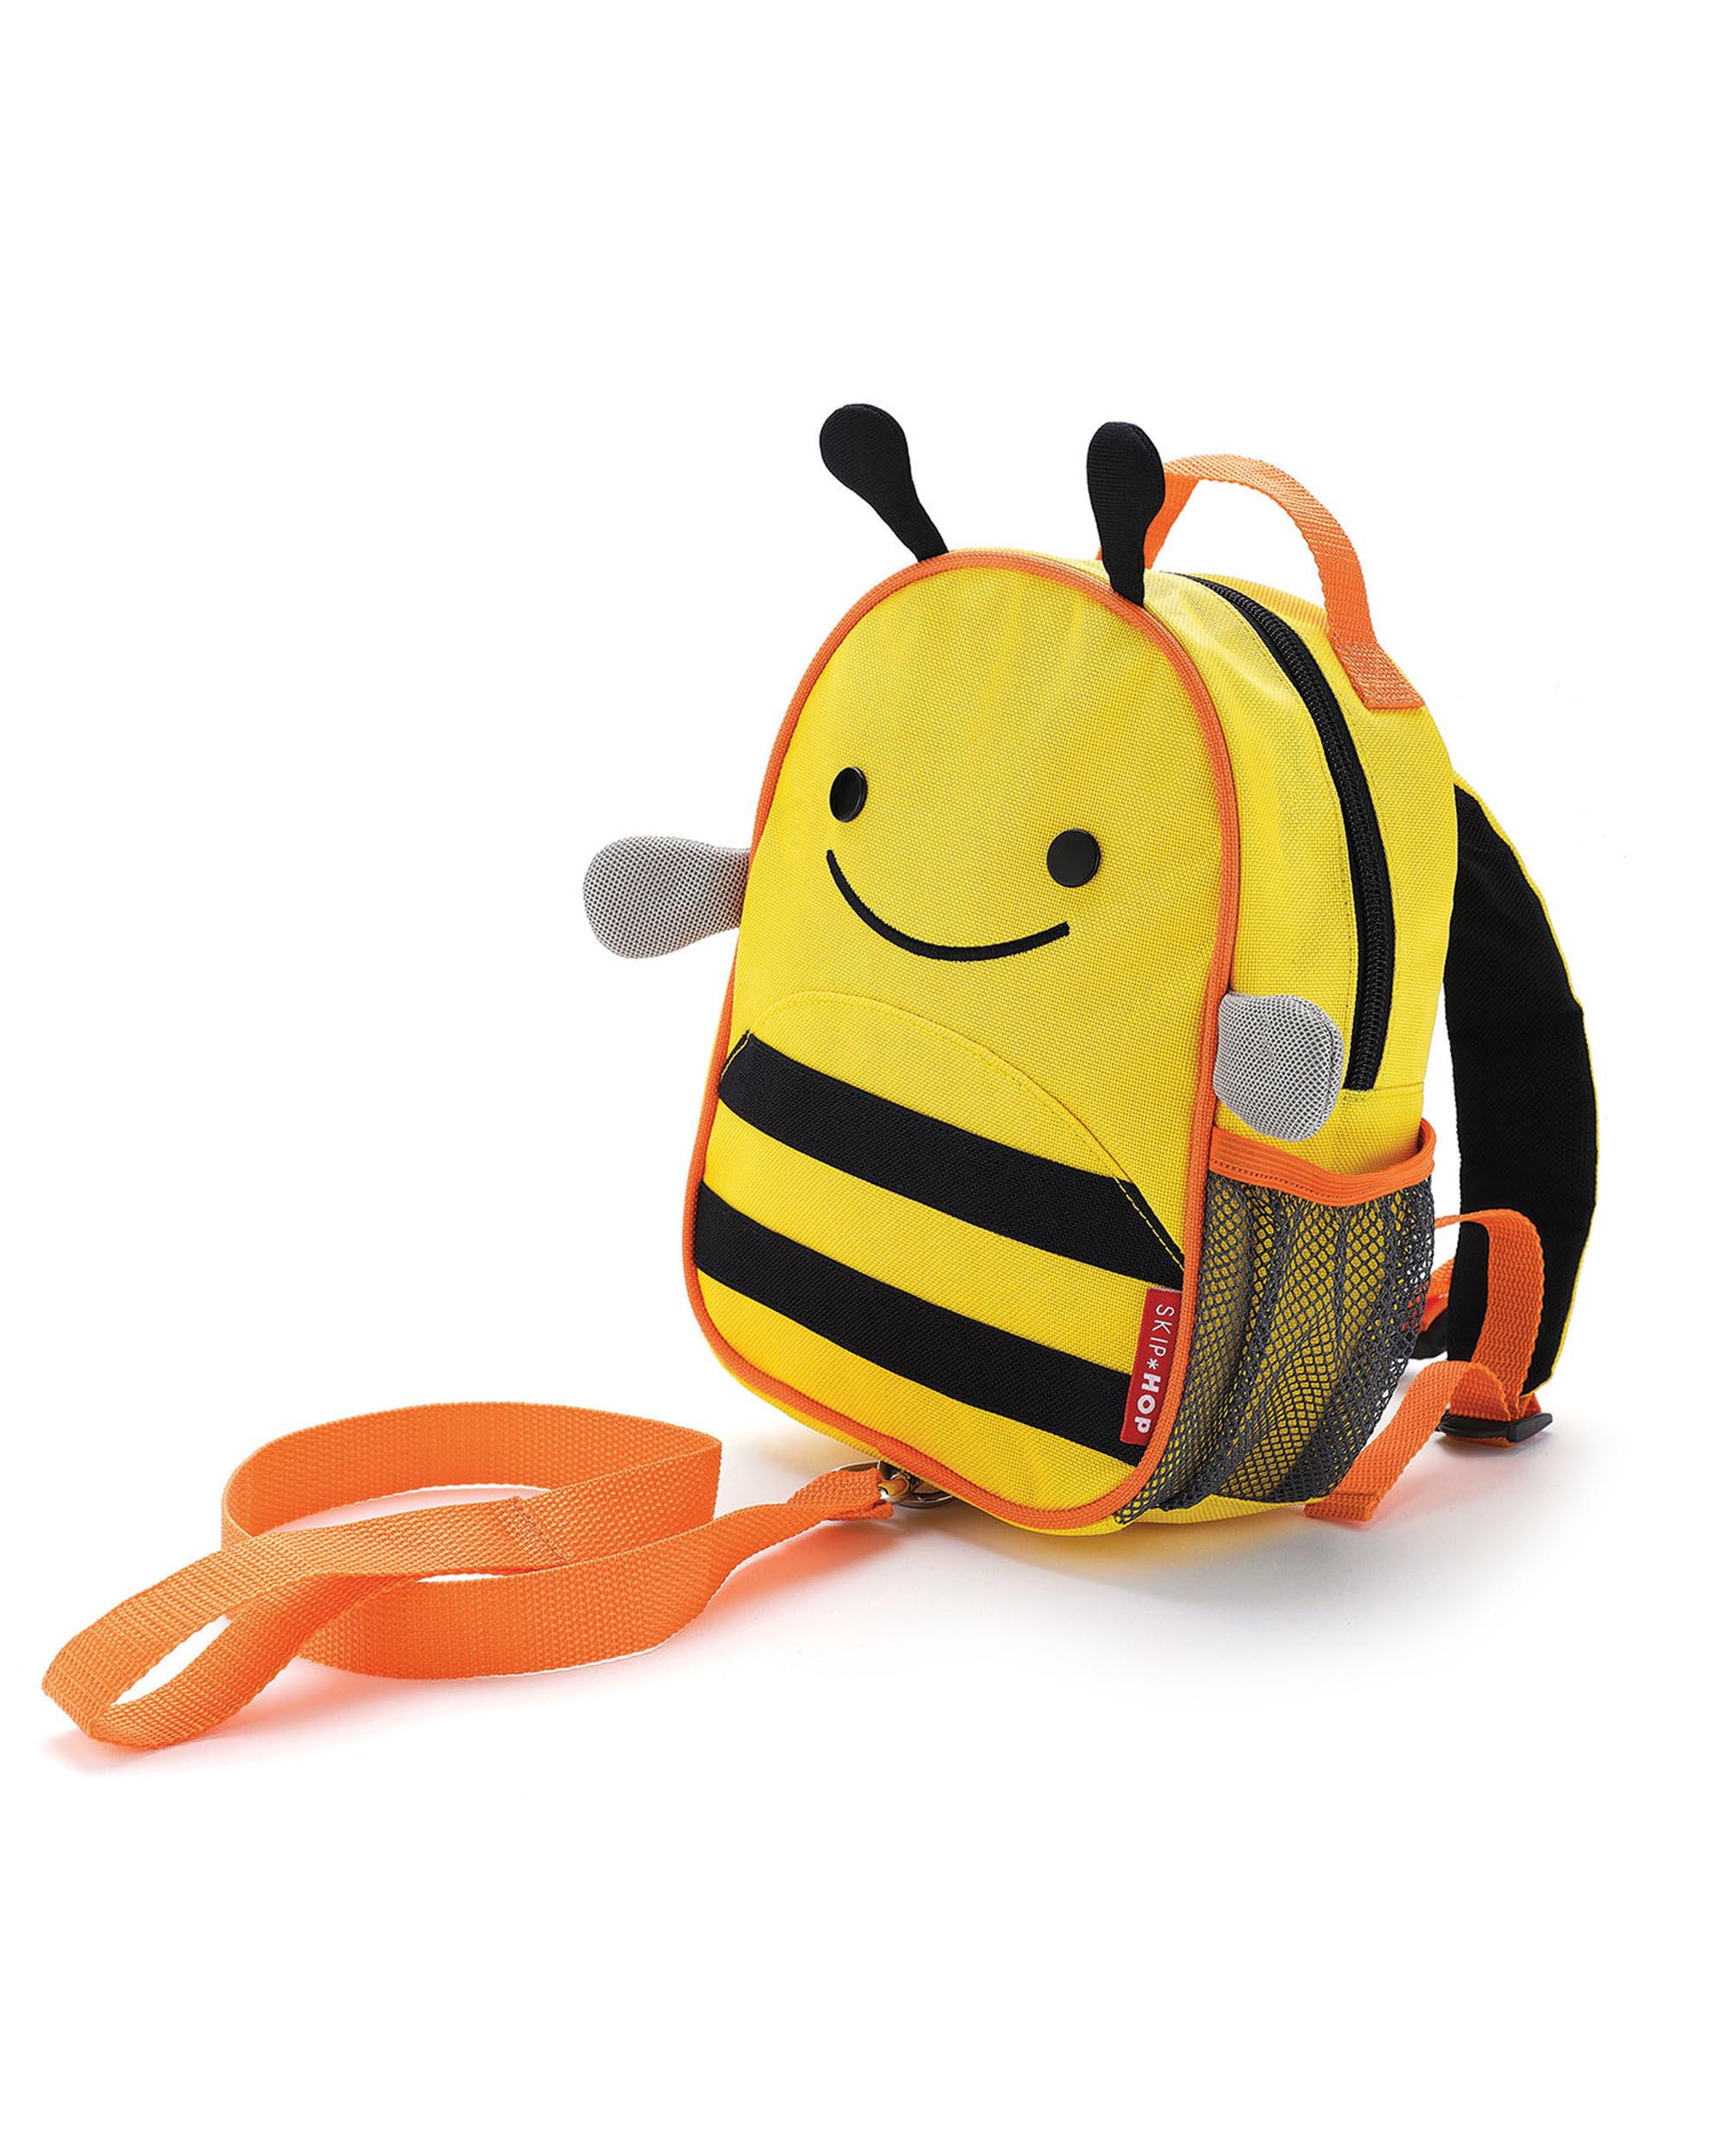 72e554d5df56 Zoo Safety Harness | skiphop.com